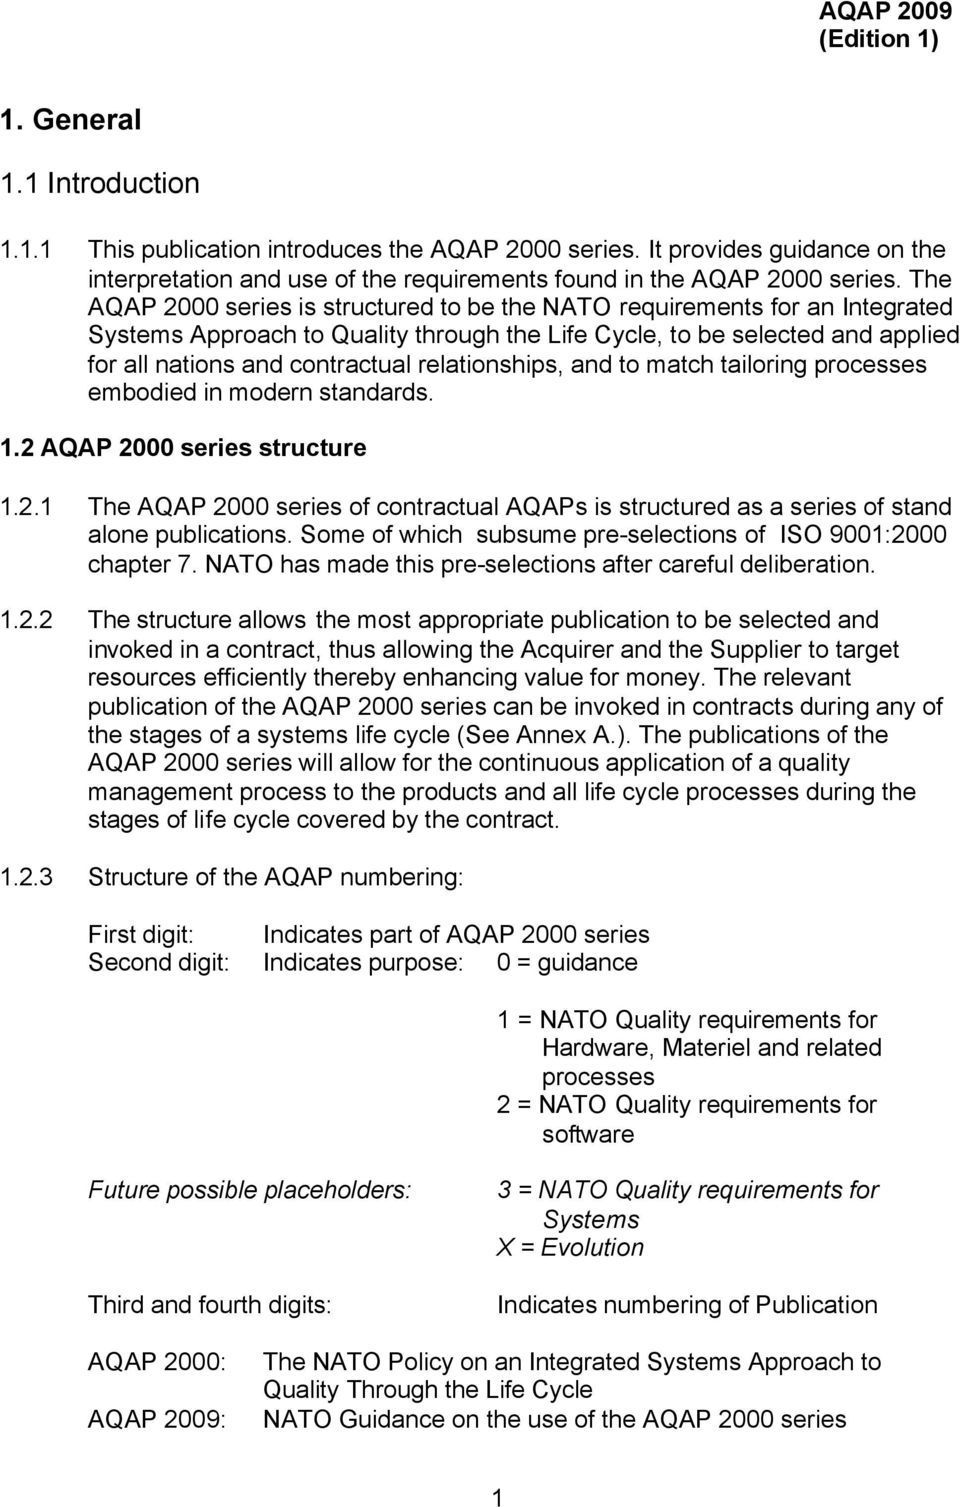 relationships, and to match tailoring processes embodied in modern standards. 1.2 AQAP 2000 series structure 1.2.1 The AQAP 2000 series of contractual AQAPs is structured as a series of stand alone publications.